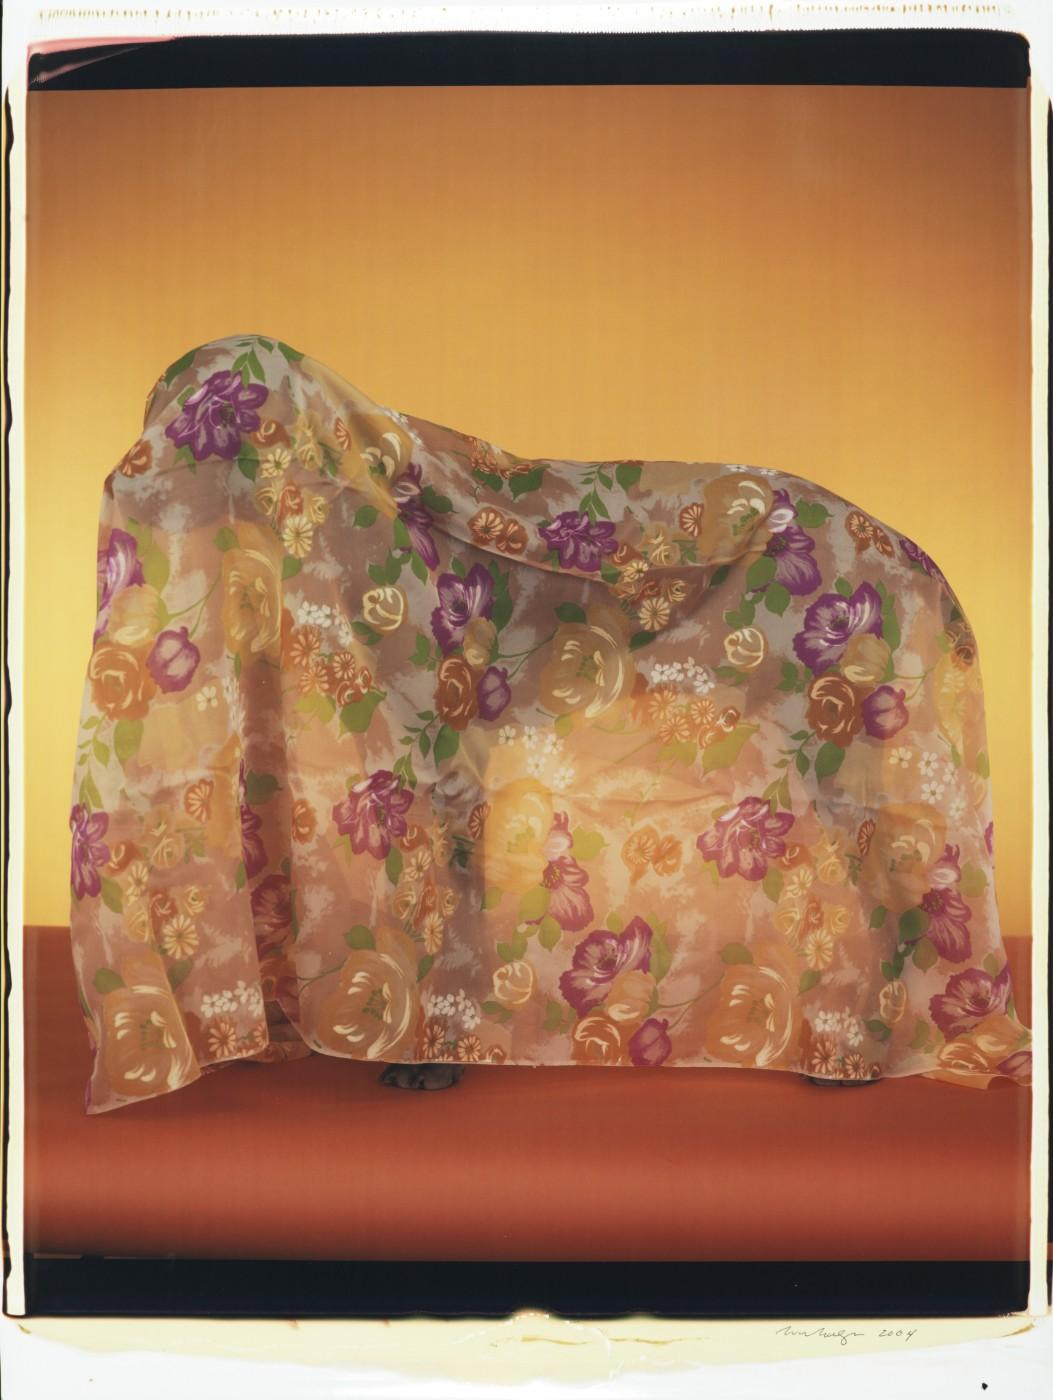 William Wegman, Rain Coat, 2004. Color Polaroid, 24 x 20 in.